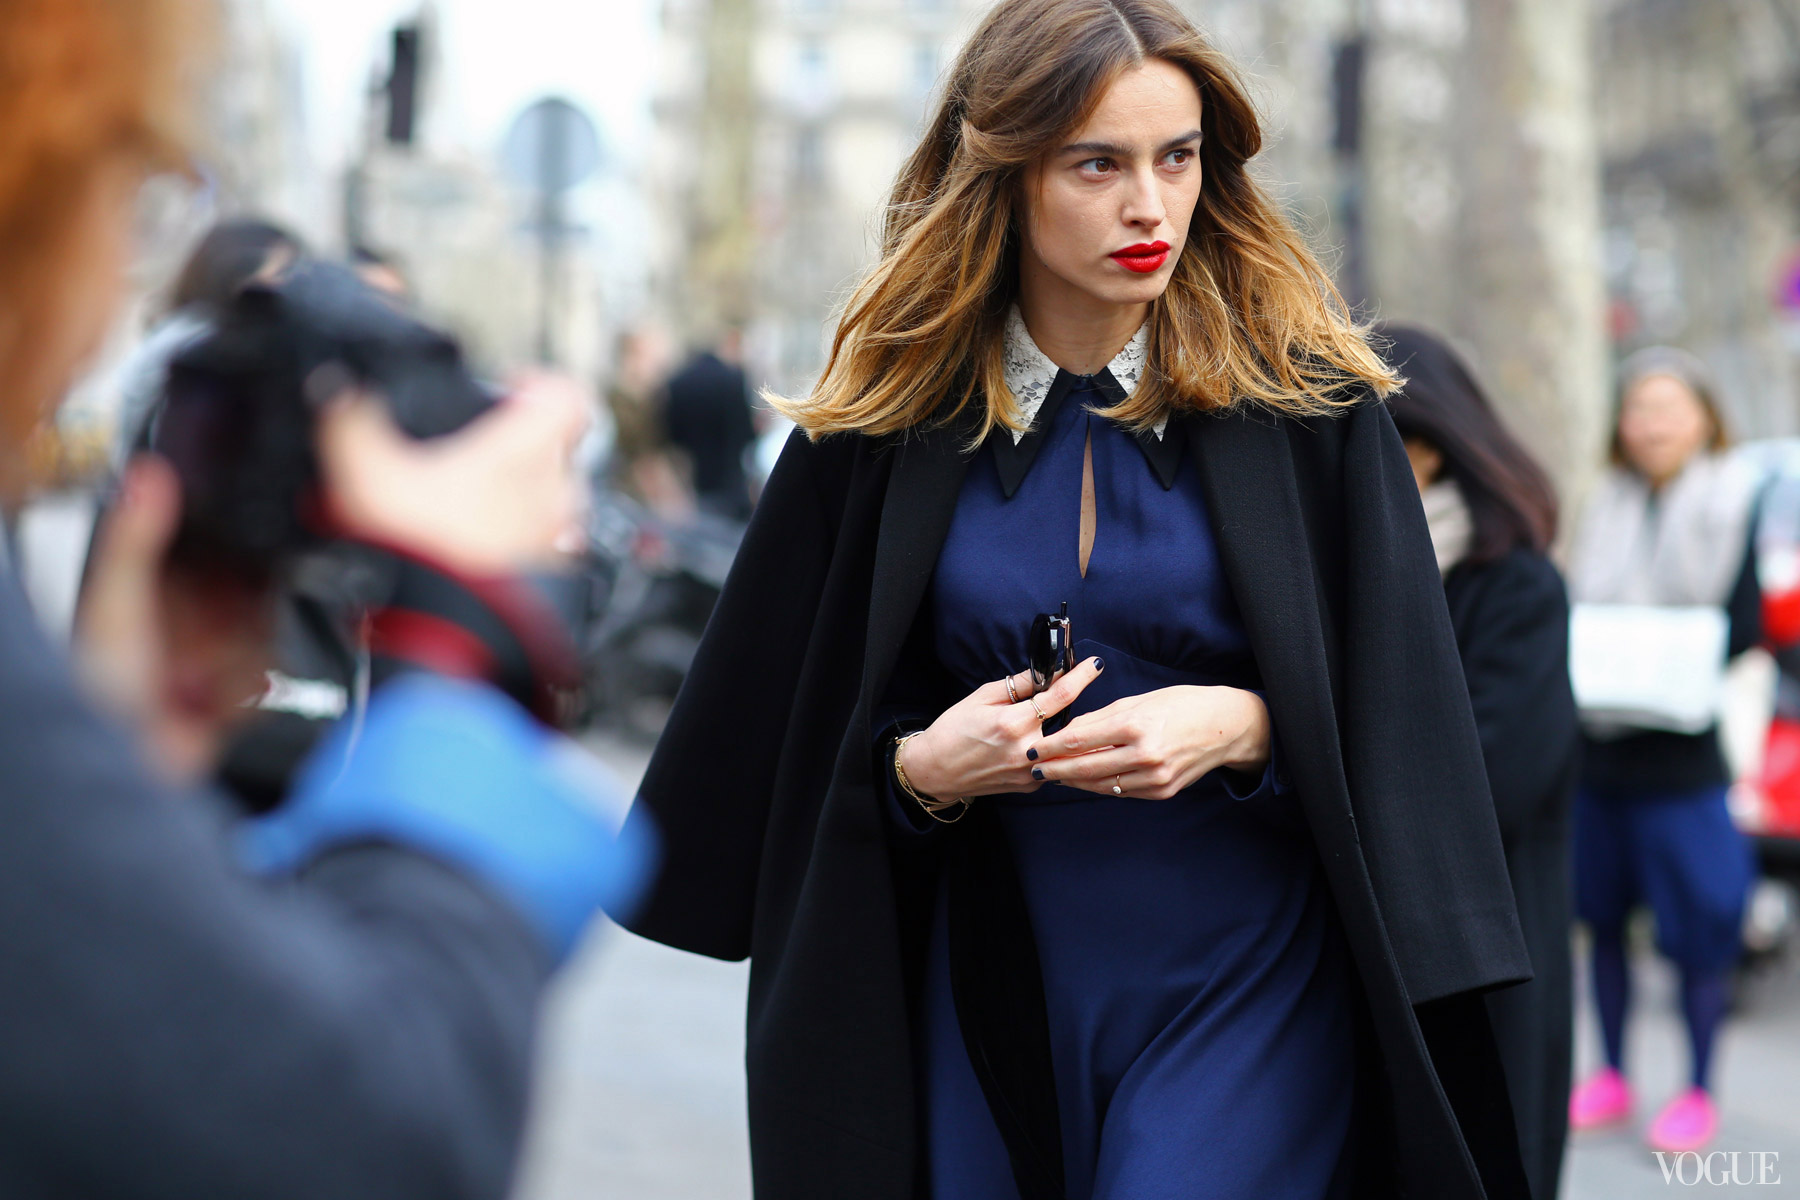 Paris Fashion Week 2013 street style. Photo courtesy of Vogue.